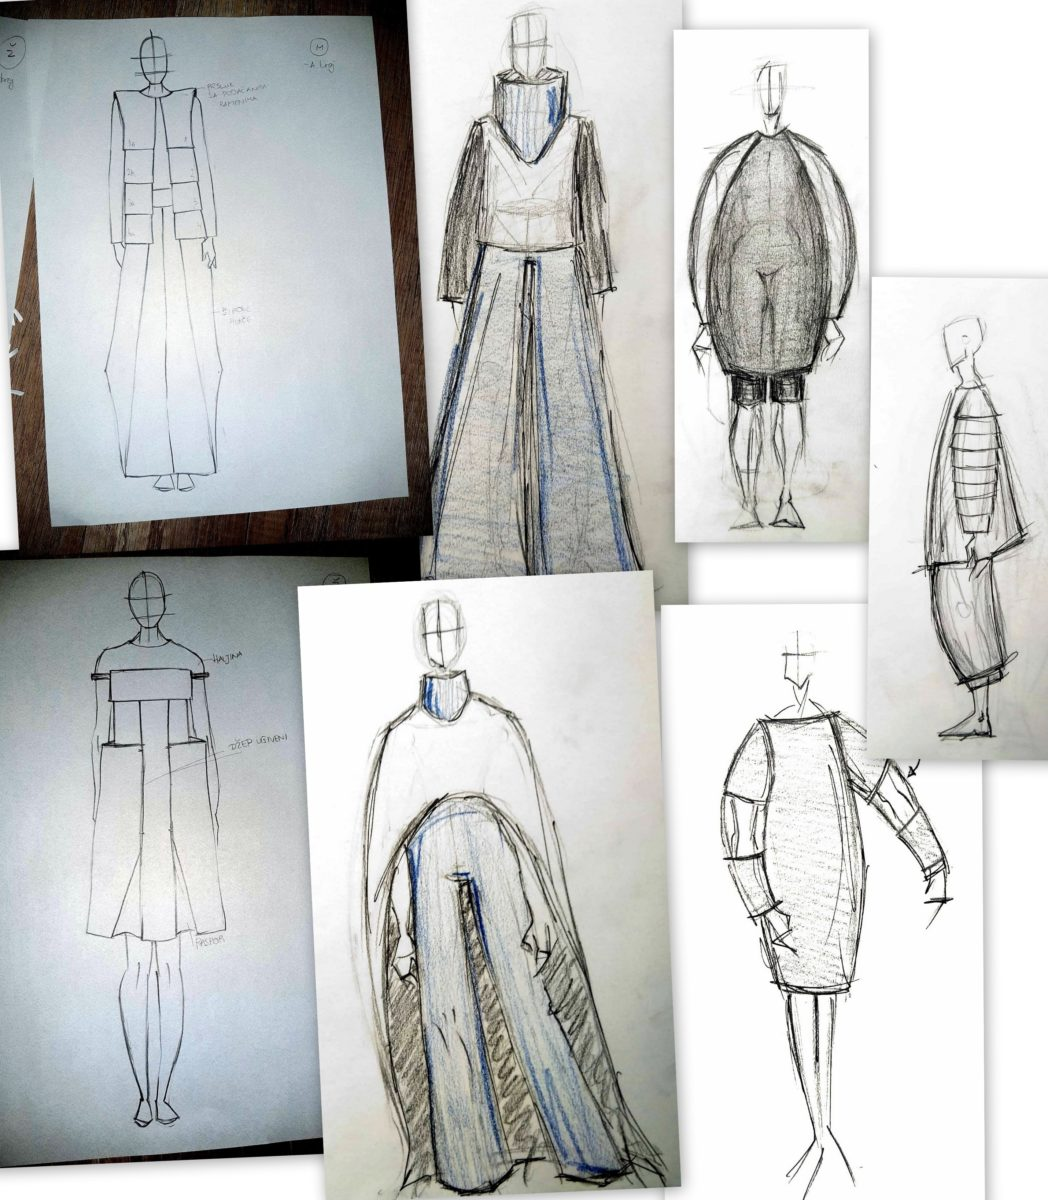 Faculty Of Textile Technology Joins In With A Student Project To Design Costumes For The Musical Collective Arktik